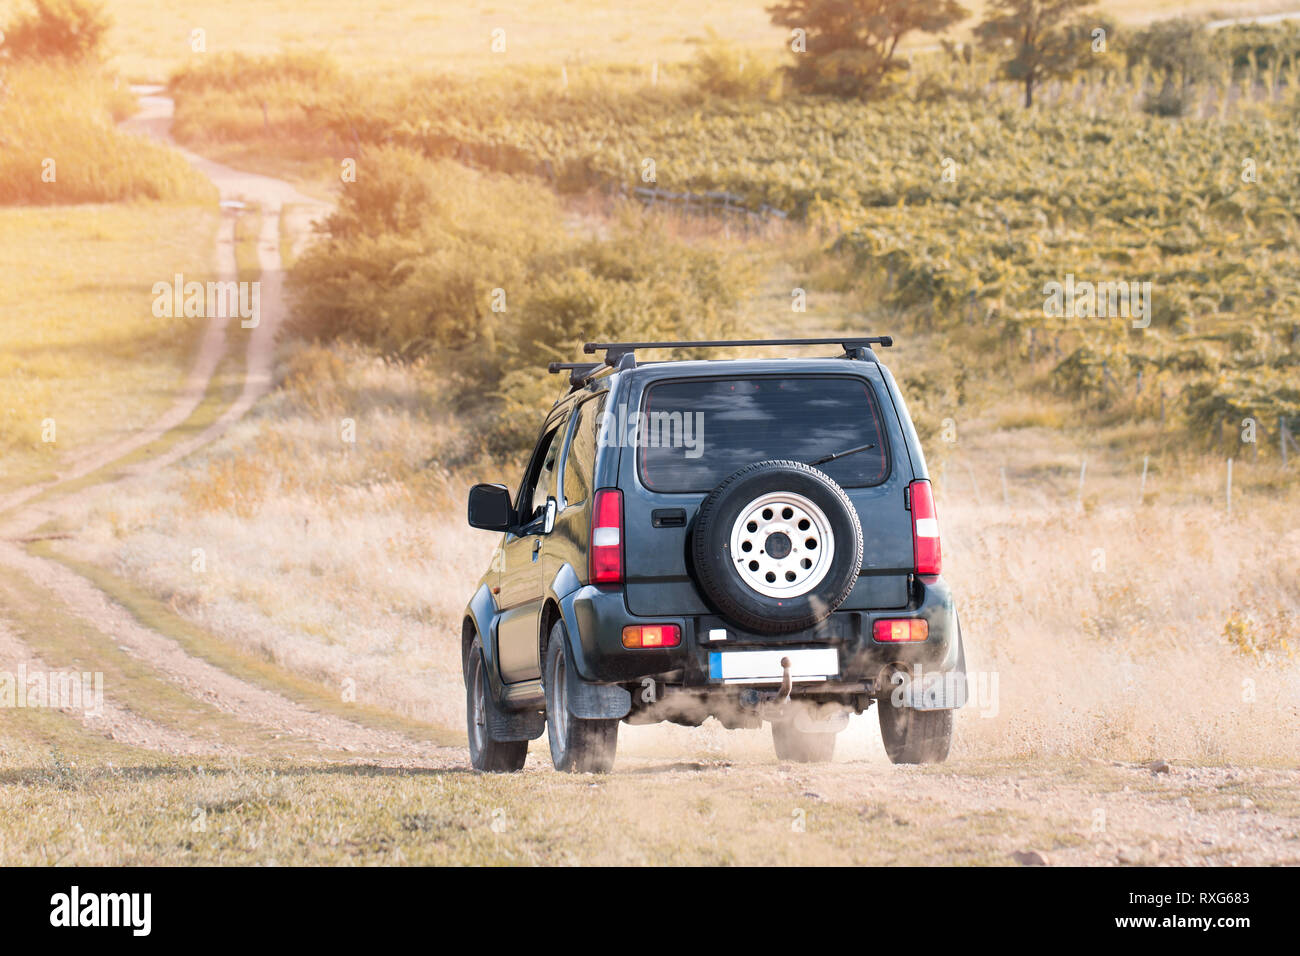 suv car offroad on dirt road in sunset - Stock Image